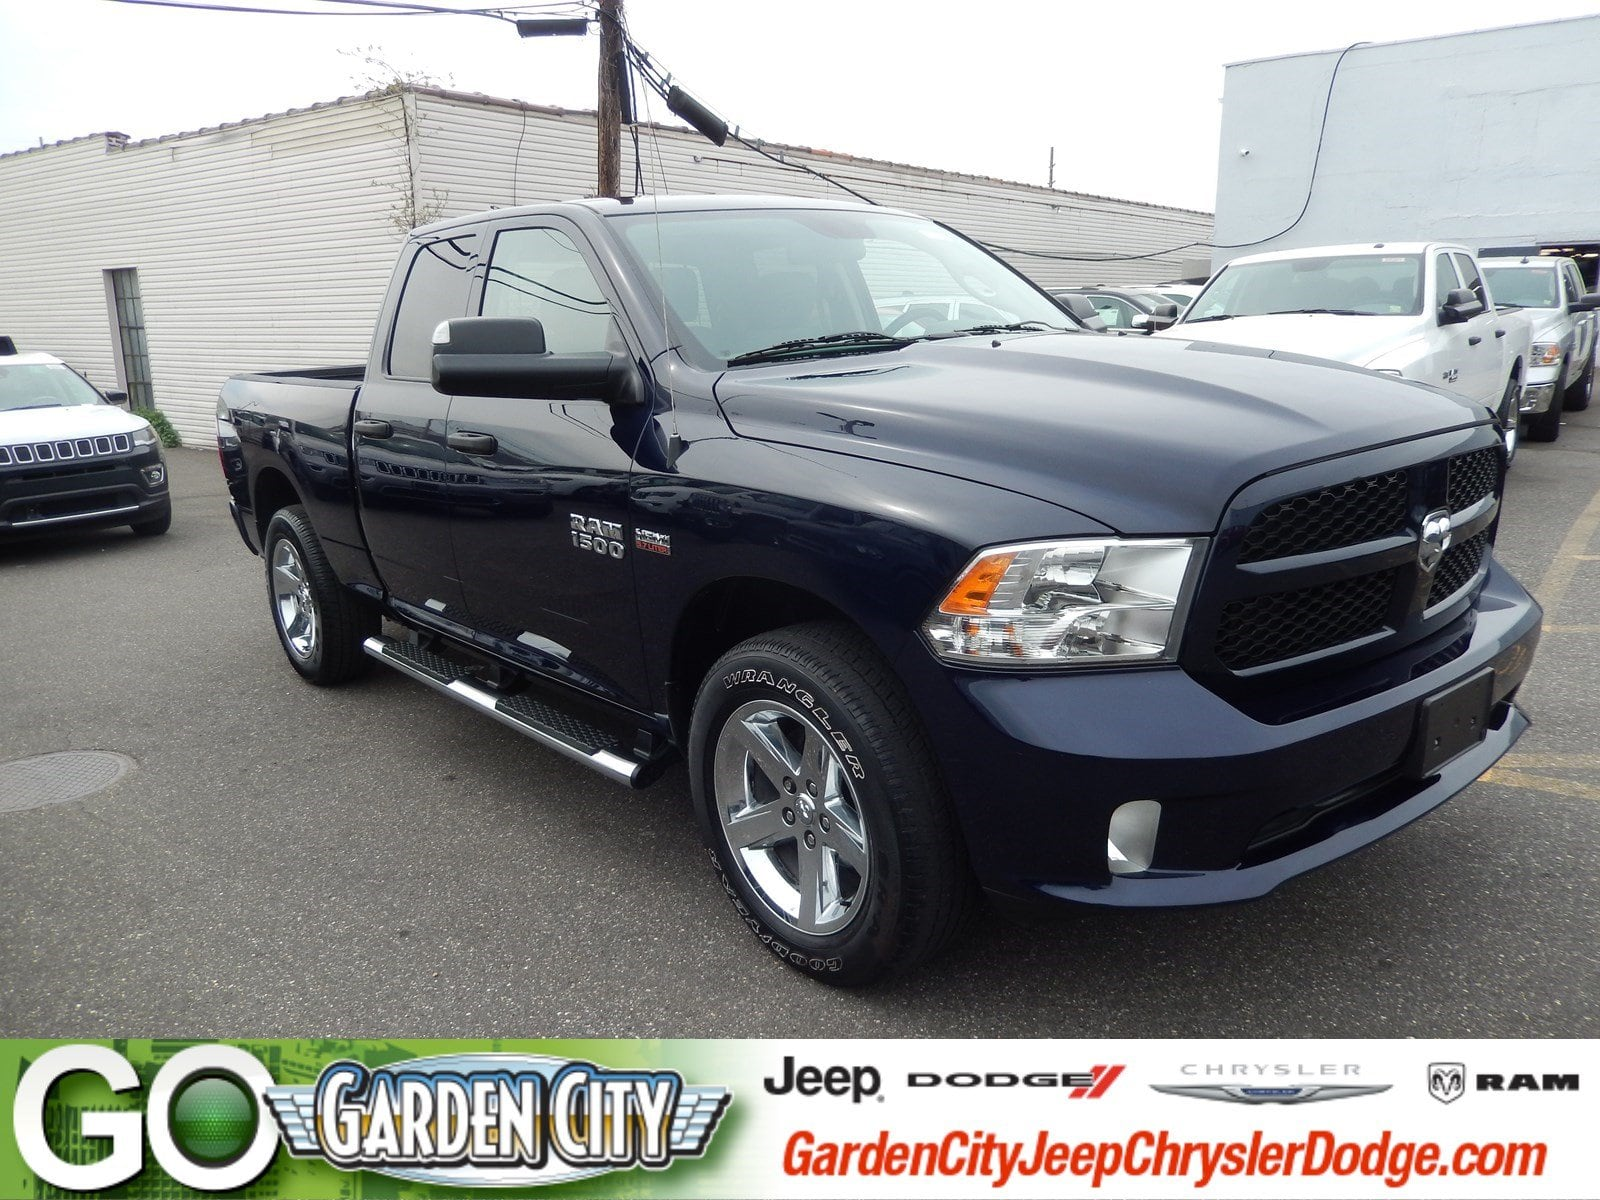 Photo Certified Used 2015 Ram 1500 Express 4WD Quad Cab 140.5 Express For Sale  Hempstead, Long Island, NY